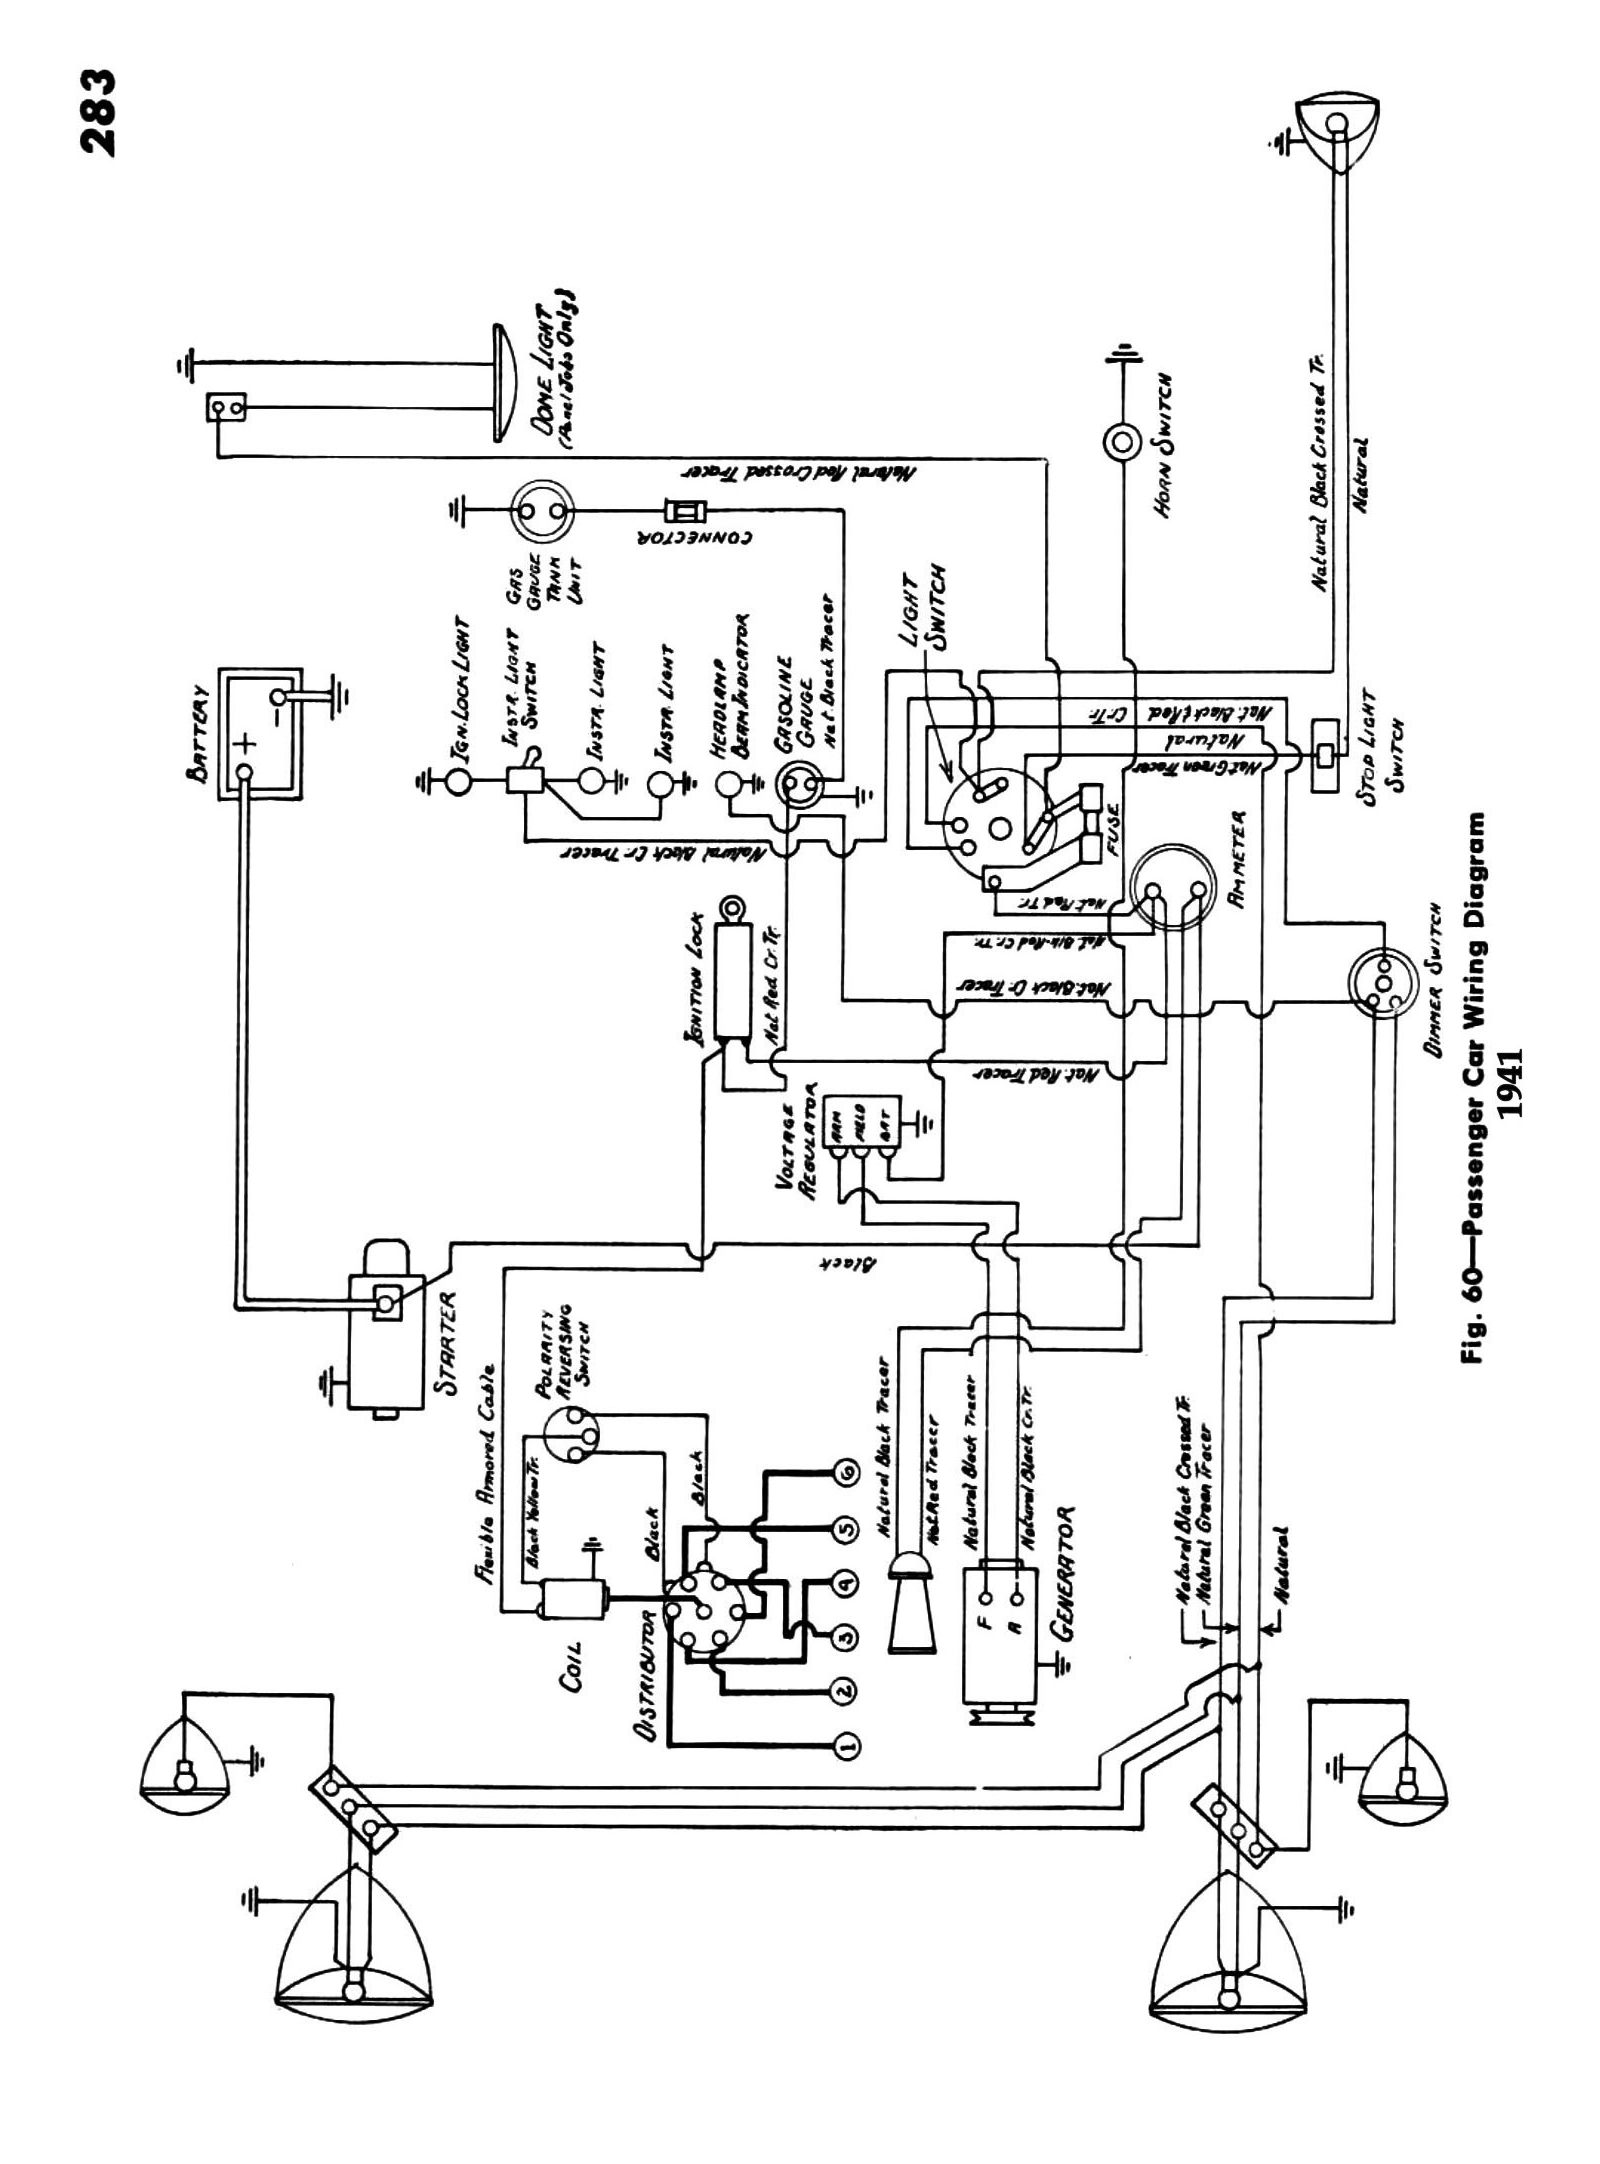 Plymouth Ac Wiring Diagram Opinions About Wiring Diagram \u2022 Farmtrac Wiring  Diagrams John Deere Positive Ground Wiring Diagram